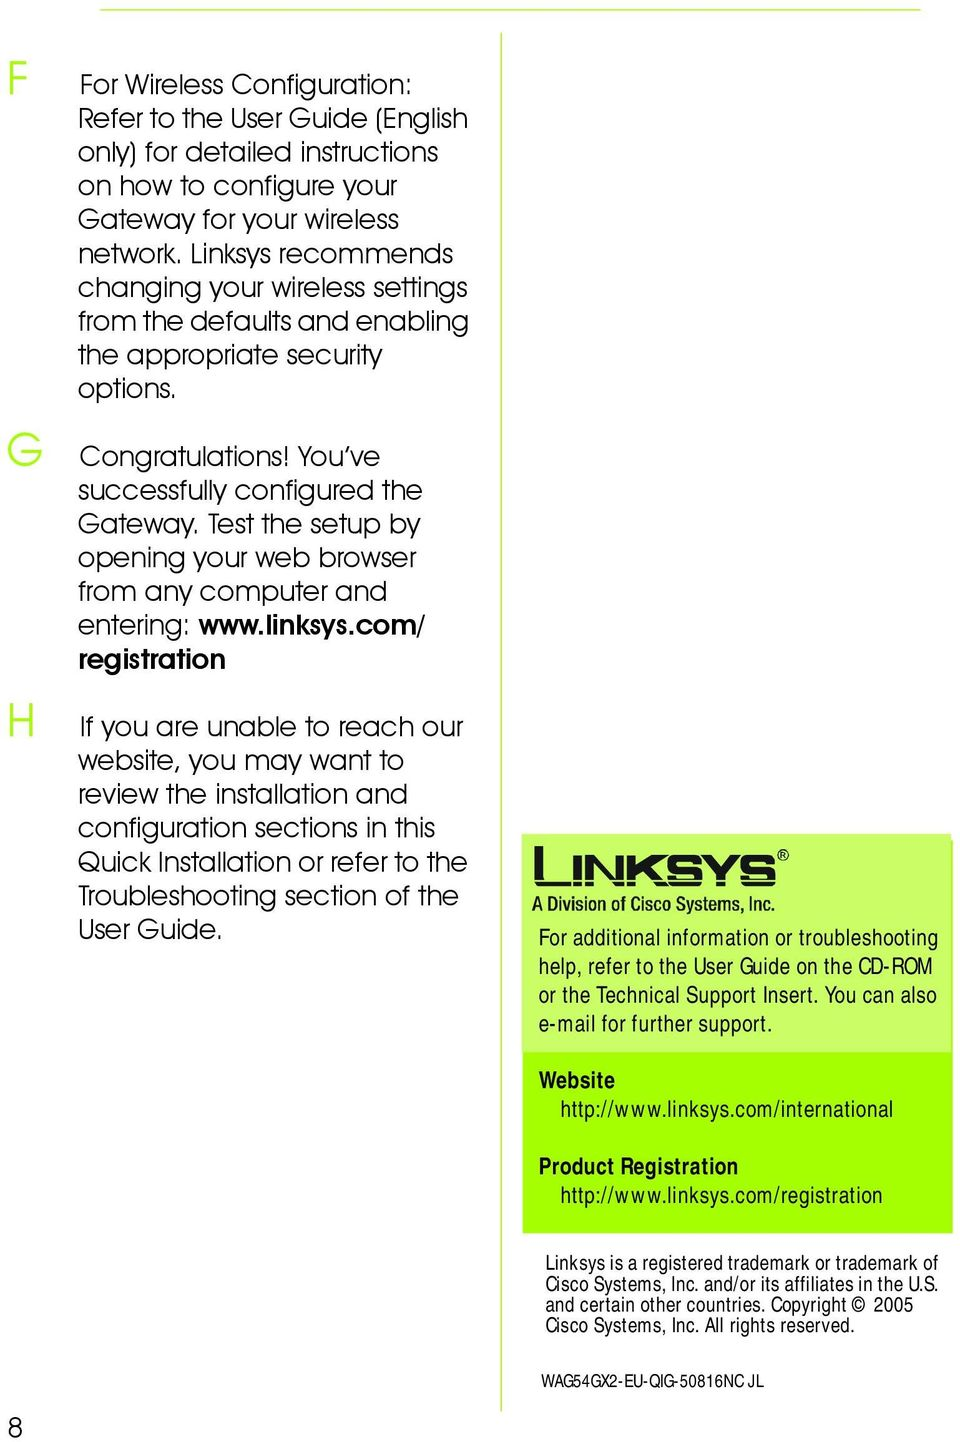 Test the setup by opening your web browser from any computer and entering: www.linksys.